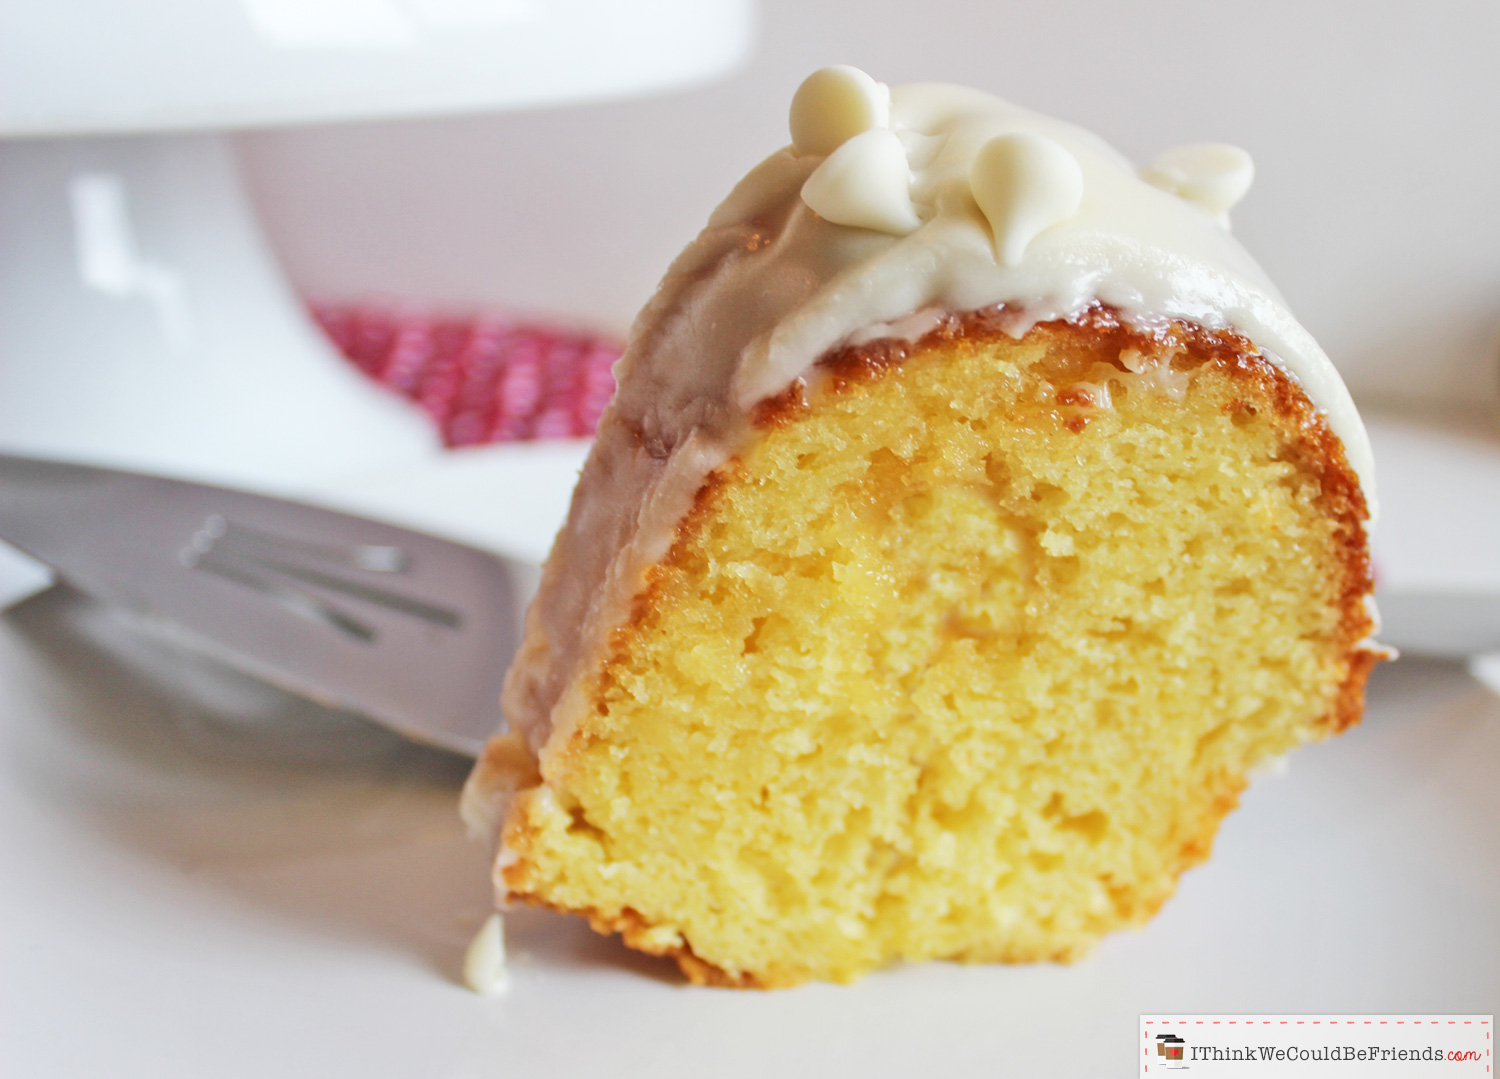 This the BEST & EASIEST White Chocolate Vanilla Bundt Cake recipe that you'll ever try! It starts with a yellow boxed cake mix, BUT then you add sour cream and a pudding mix, it looks FANCY and tastes MOIST and INCREDIBLE! Your guests will rave and will ask for the recipe (so bring copies!) #white #chocolate #vanilla #bundt #cake #recipe #mix #yellow #best #easy #quick #moist